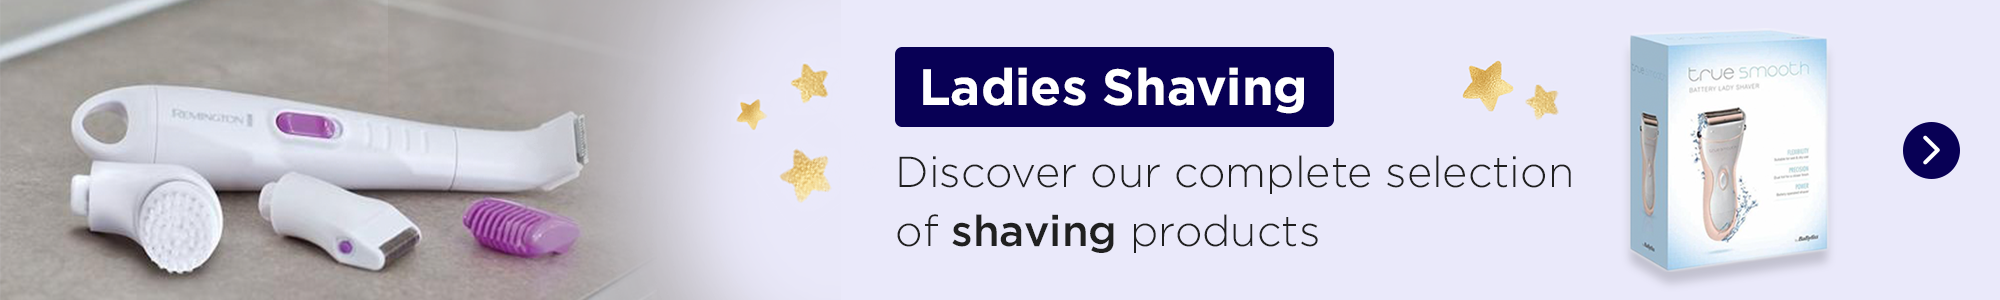 Discover our complete selection of Ladies Shaving products